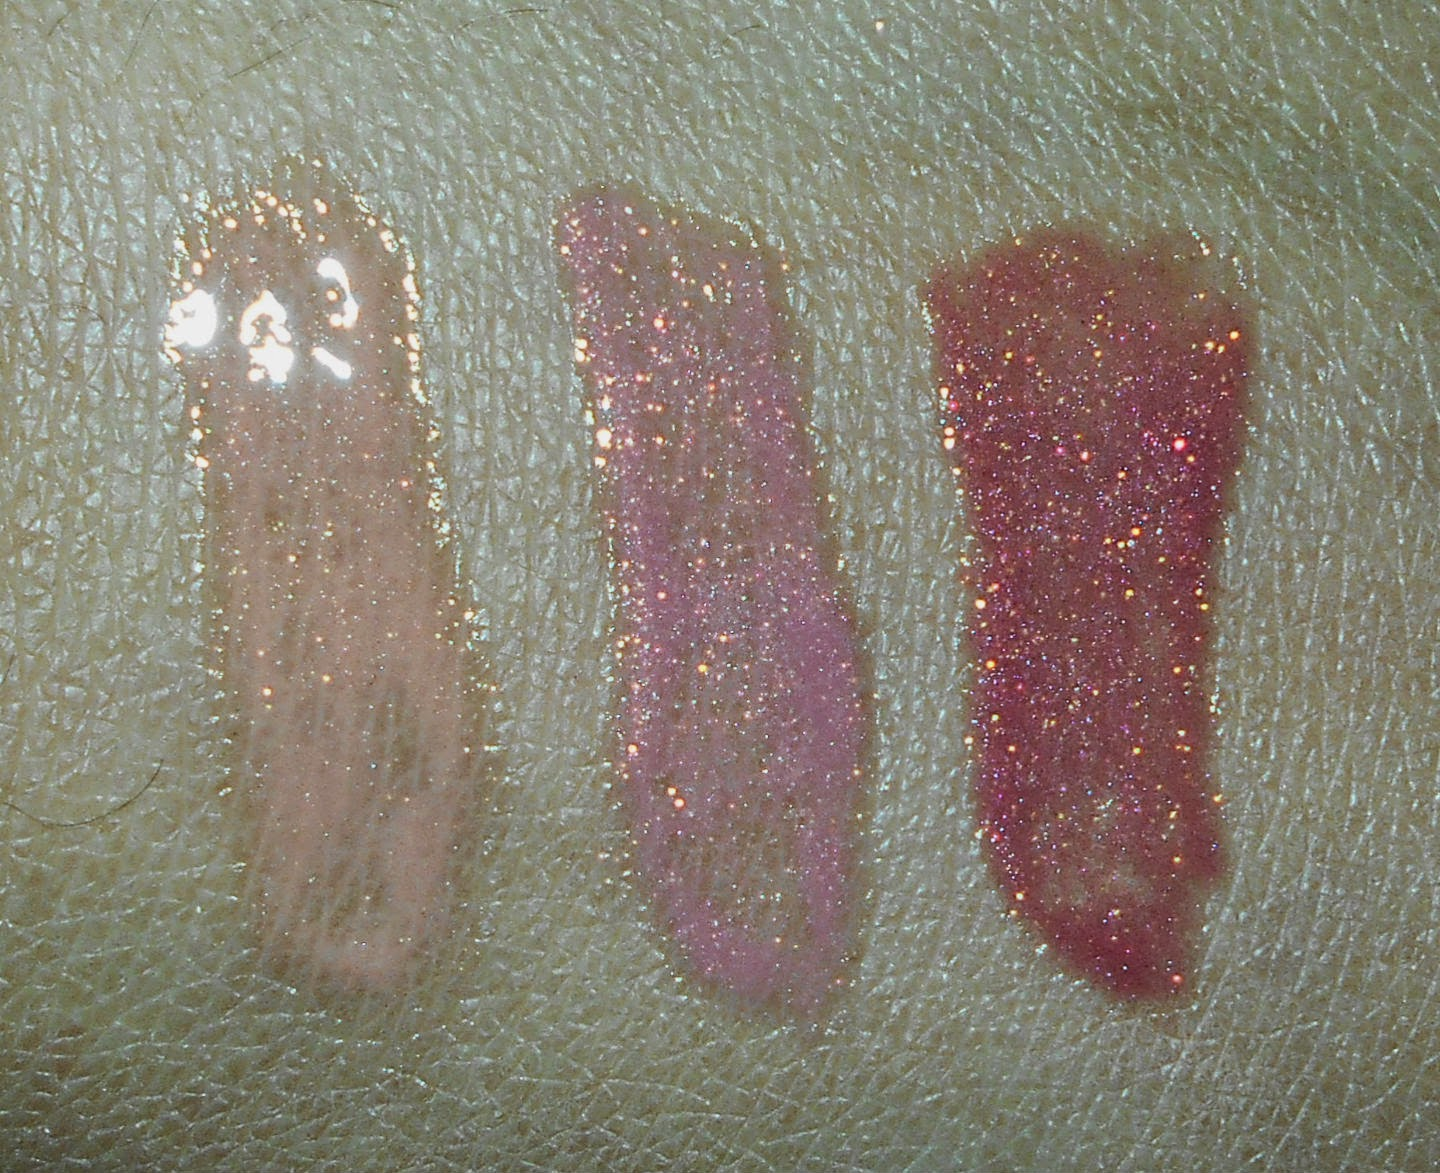 Buxom Full-Bodied Lip Gloss Collection- Nudes & Brights